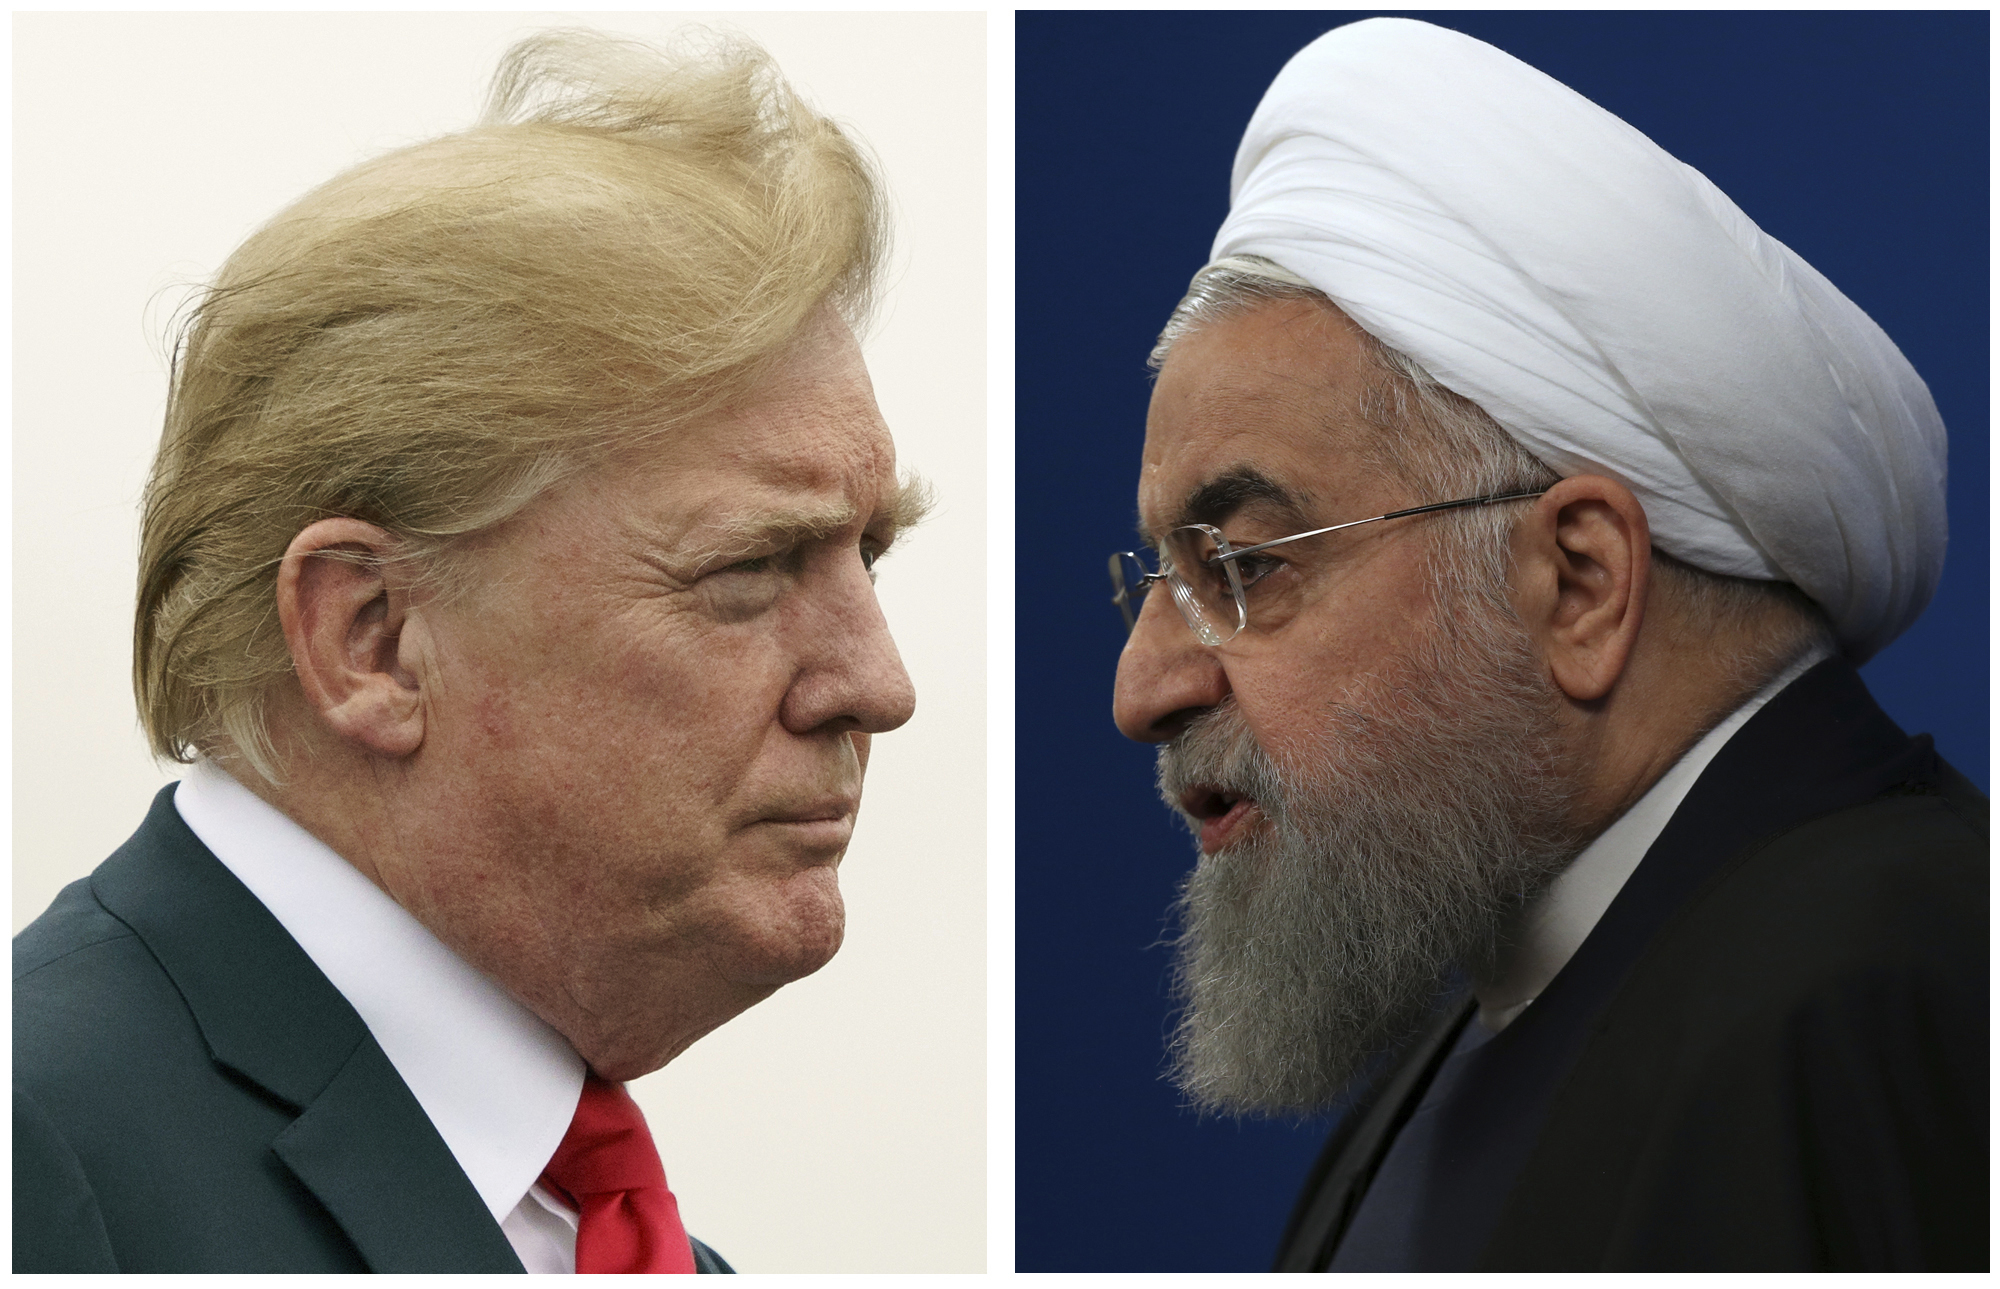 Iran nuclear deal: Plan put forward to dodge U.S. sanctions